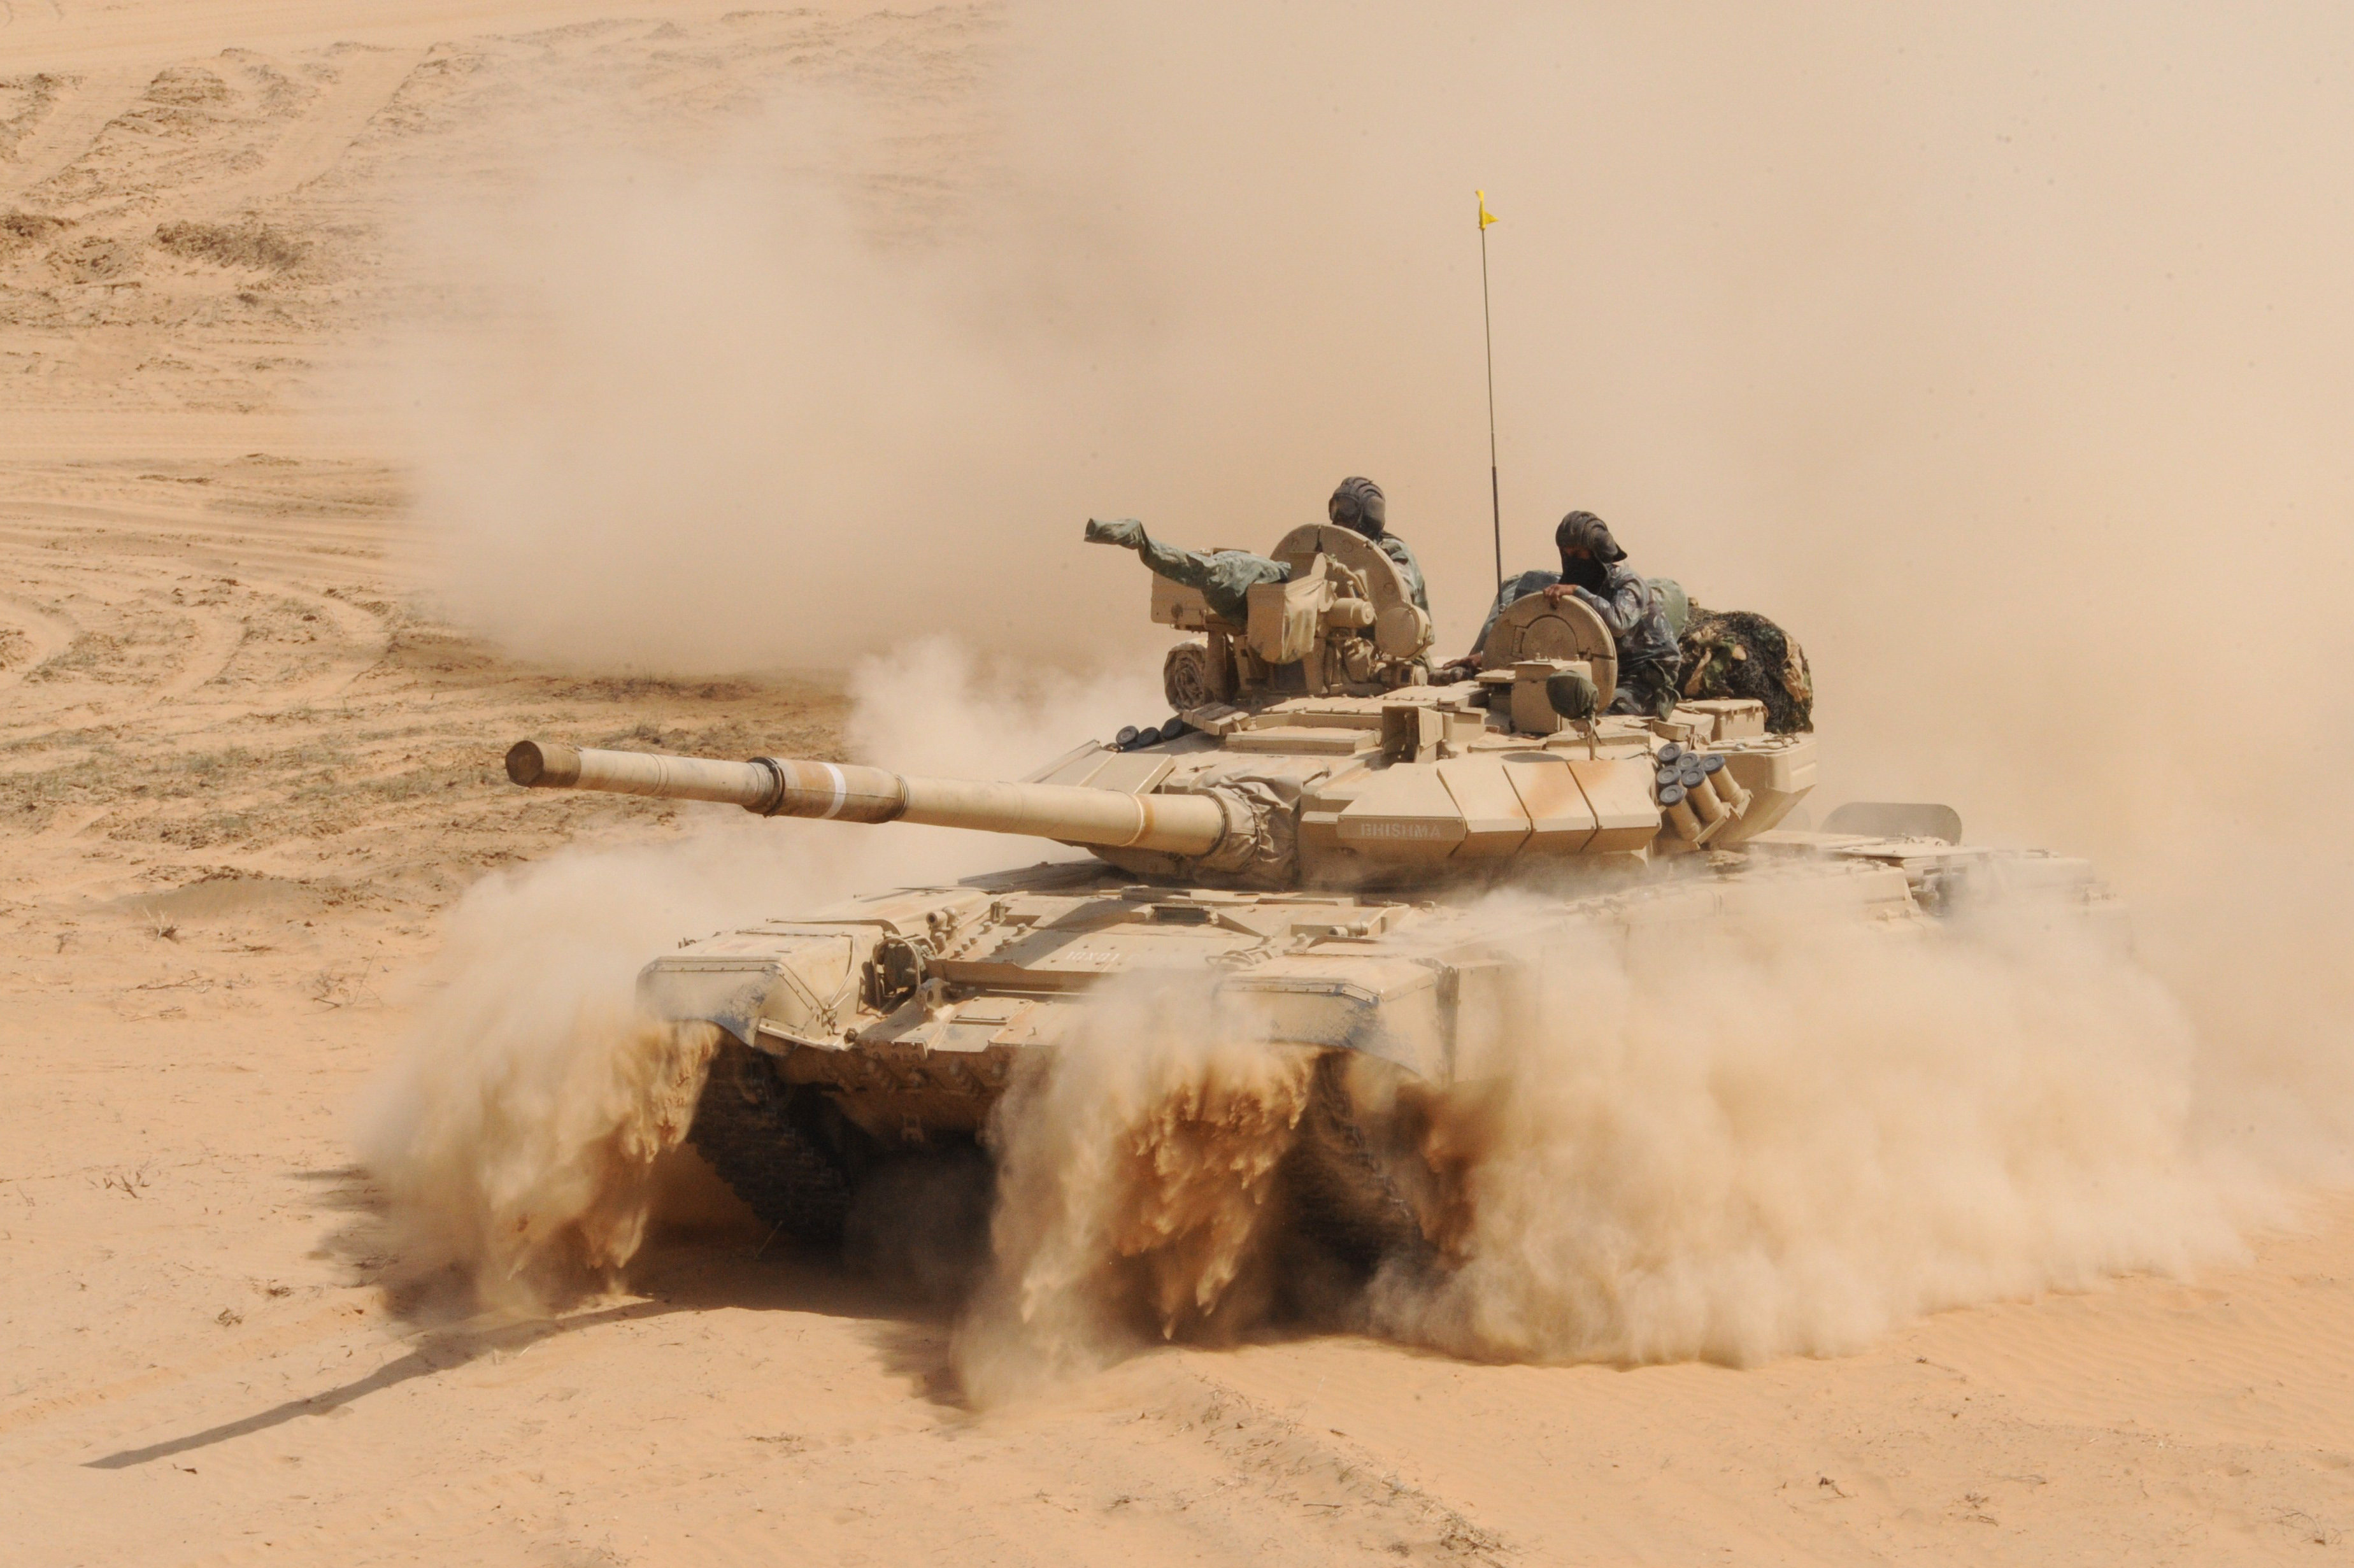 An Indian Army T-90 battle tank kicks up dust during the Shoor Veer military exercise near Hanumangarh, located near the India-Pakistan border, 2012.